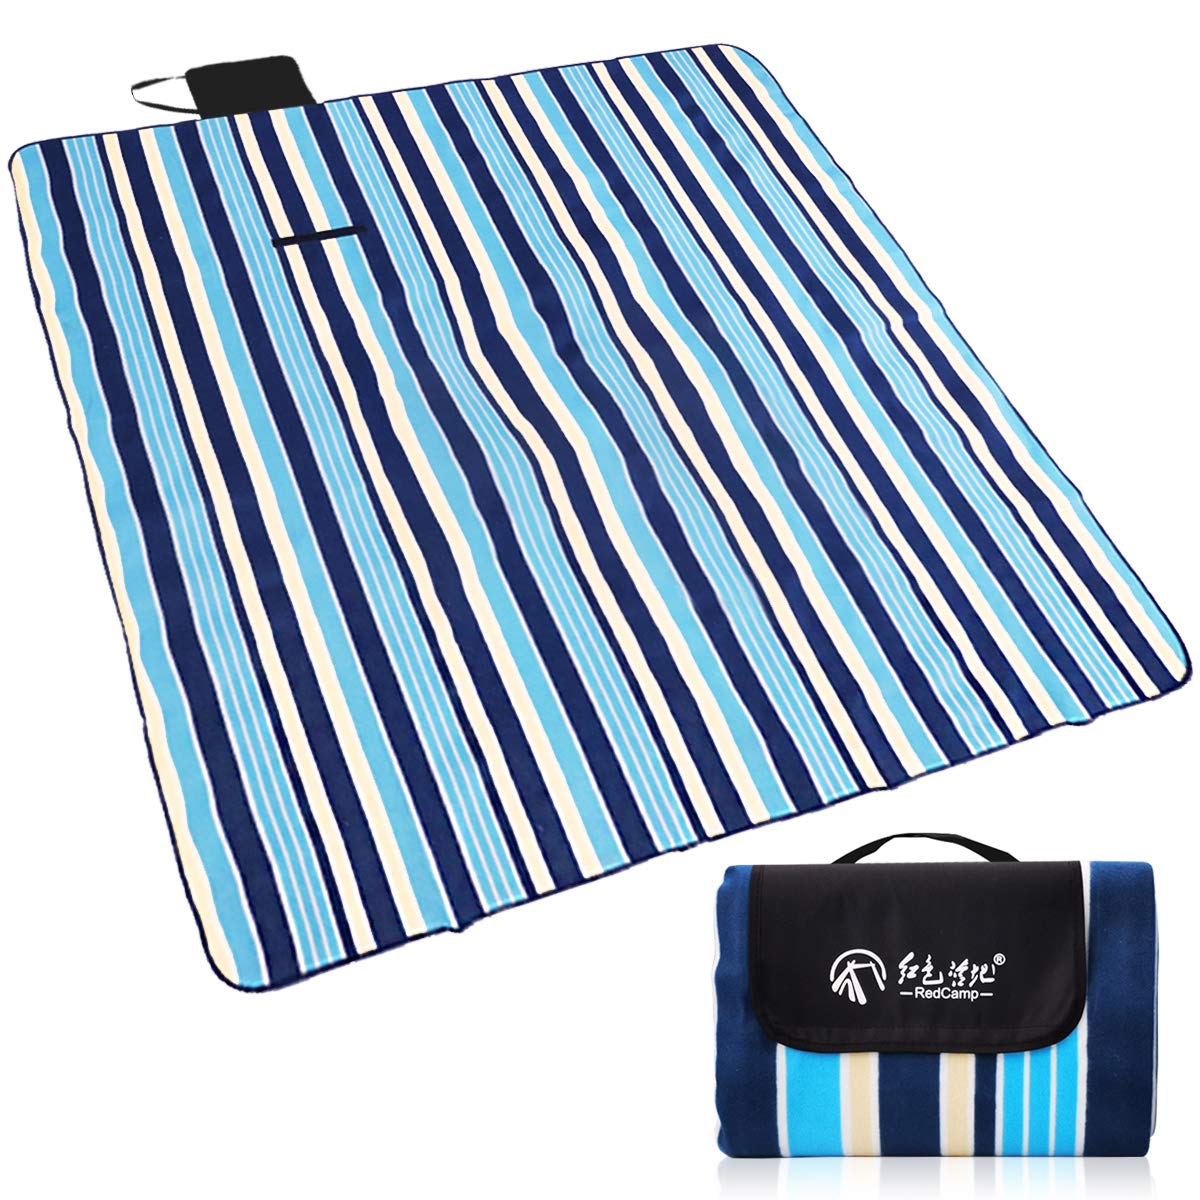 Hiking Blue Stripes Foldable and Lightweight azamp Outdoor Picnic Blanket 150 x 200 cm Multifunctional Portable for Festival Travel Camping Beach Blanket Water-Resistant Mat